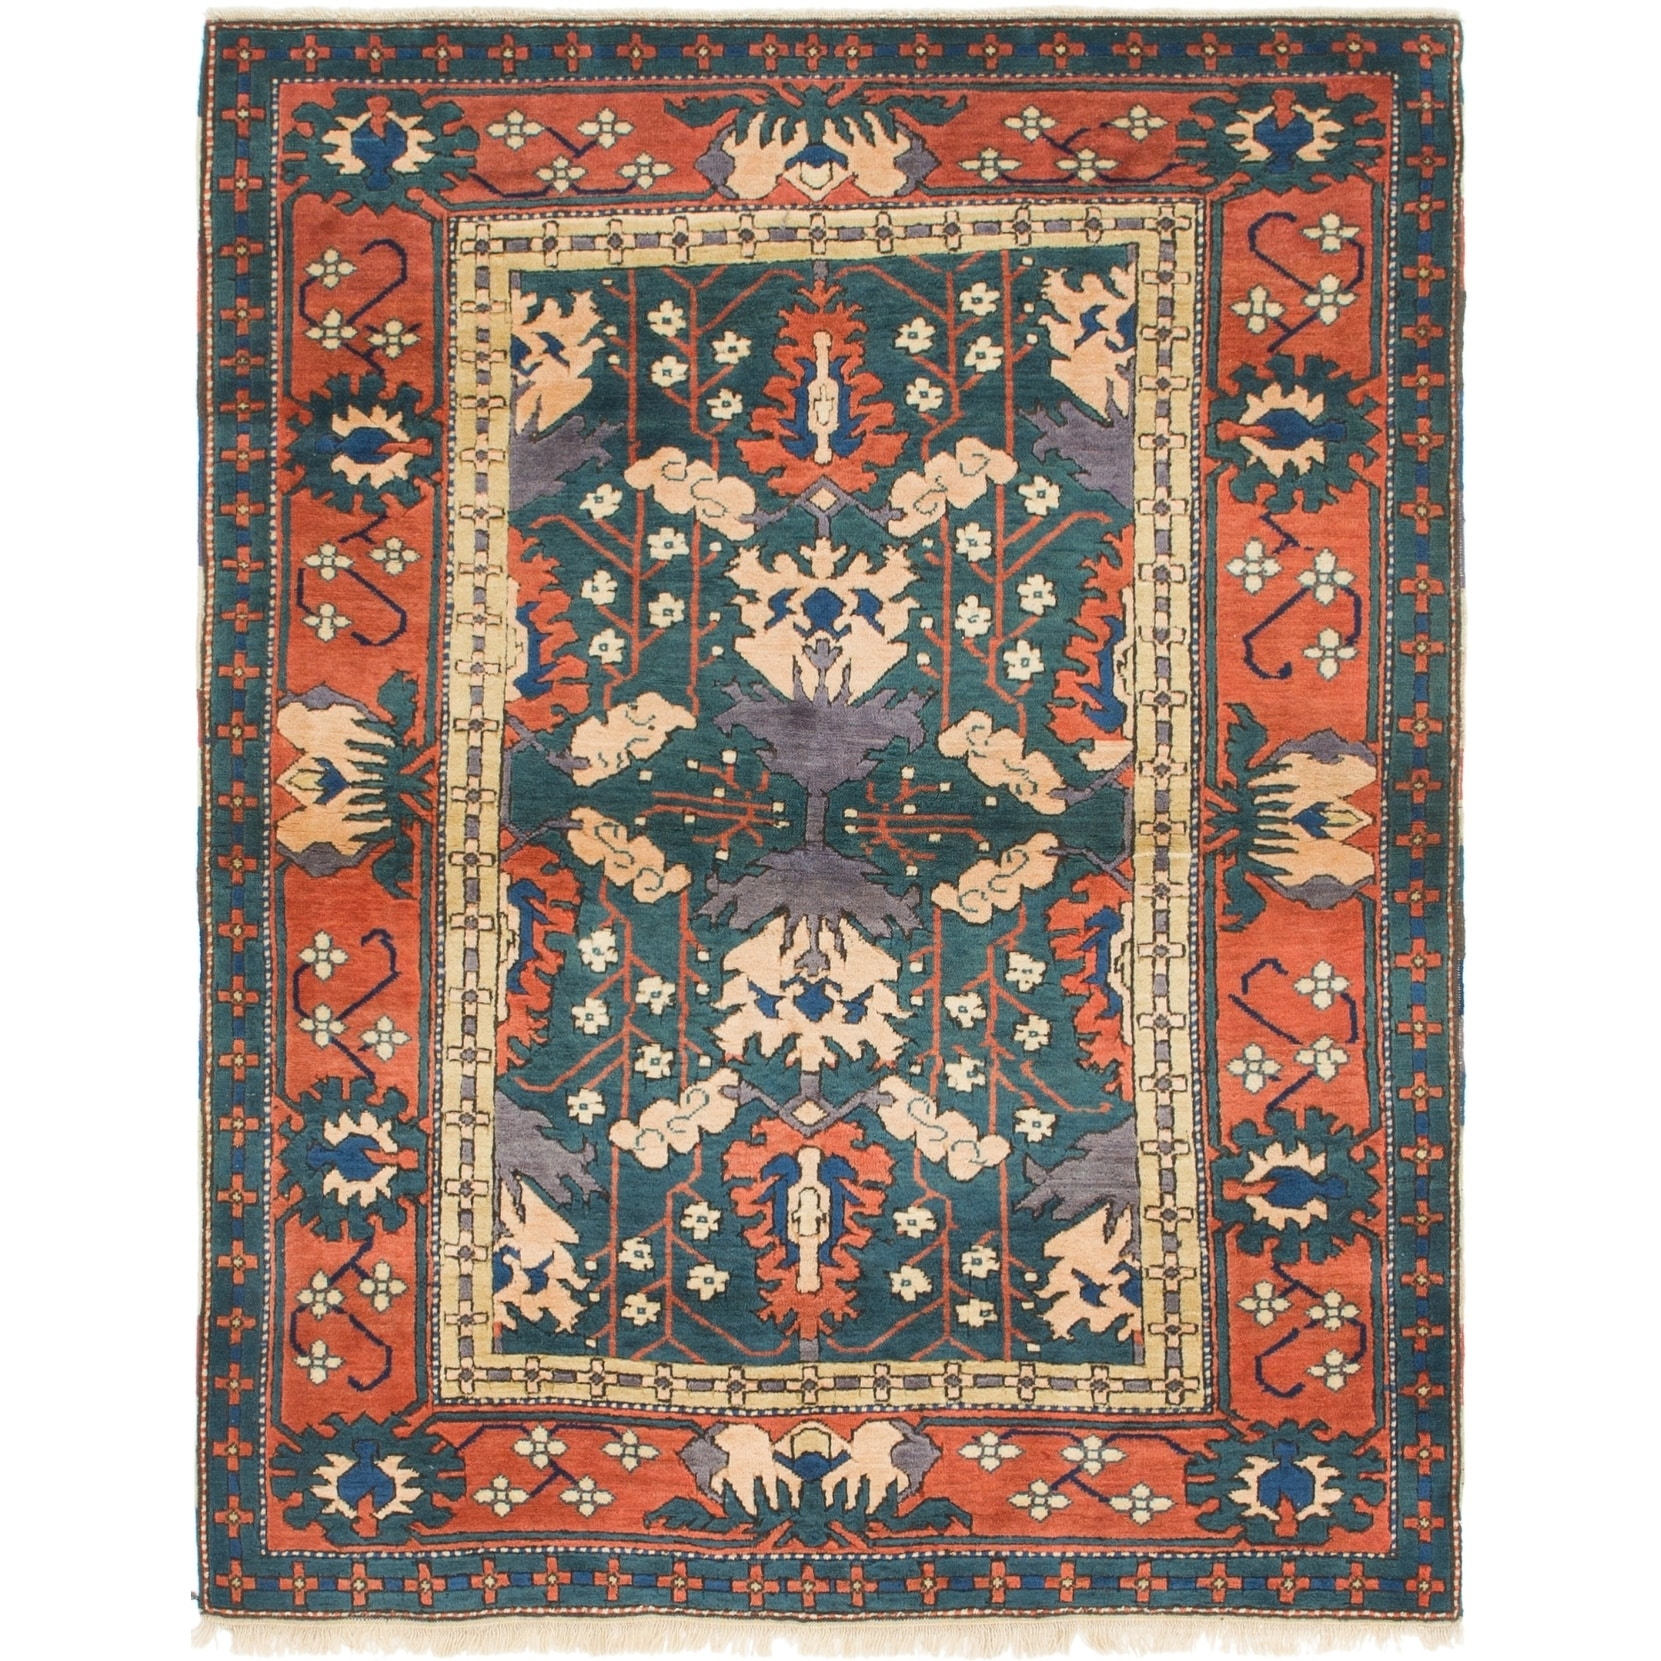 Hand Knotted Kars Wool Area Rug - 4' 9 x 6' 2 (Green - 4' 9 x 6' 2)